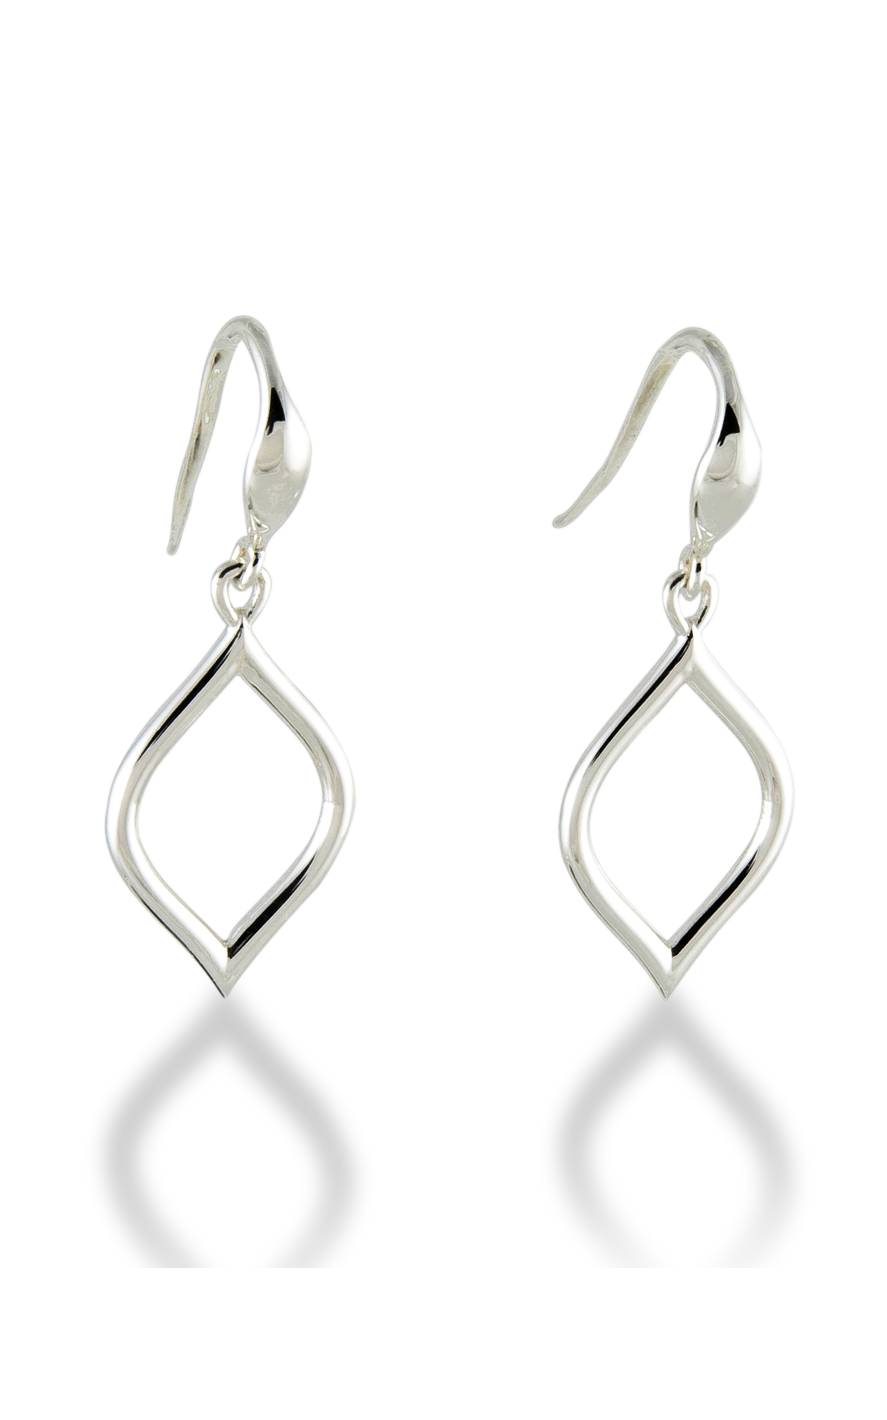 Zina Contemporary Earrings B1722 product image